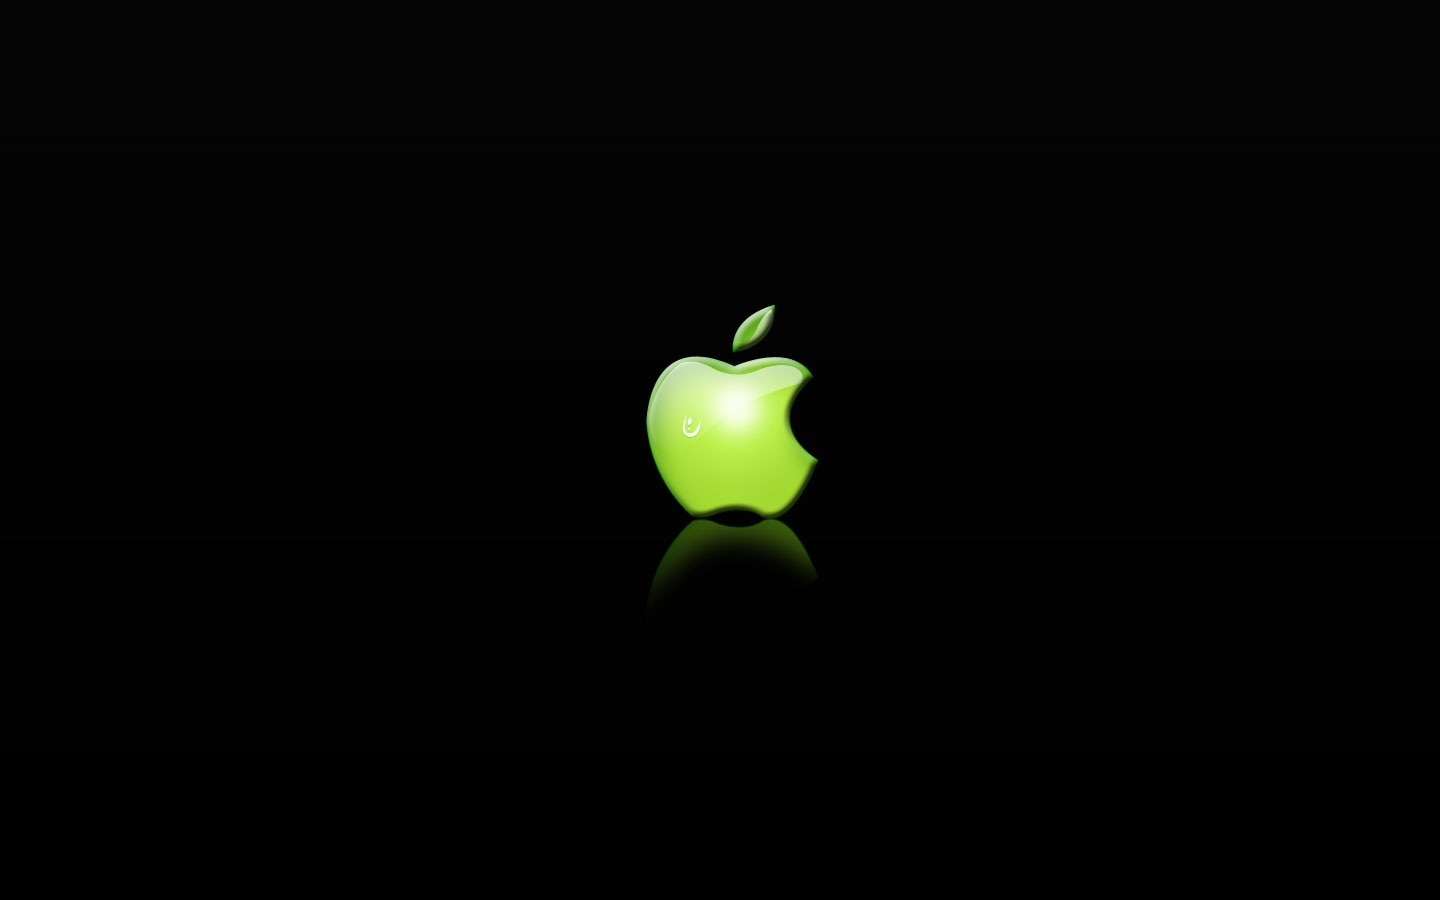 Hd Mac Desktop Backgrounds #39012 Hd Wallpapers Background ...